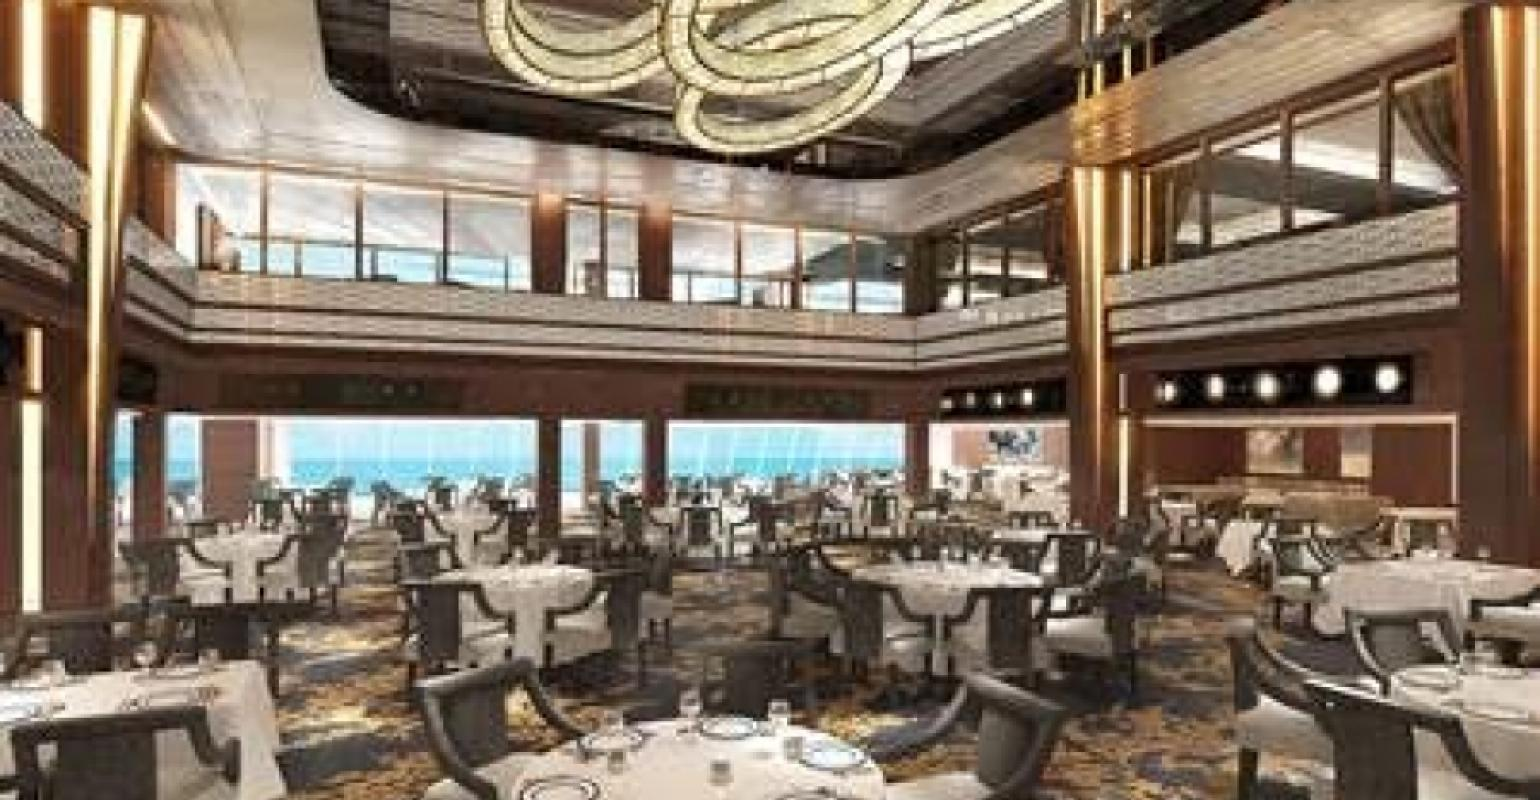 Norwegian Joy Sets A Feast Of Food And Beverage Options Seatrade